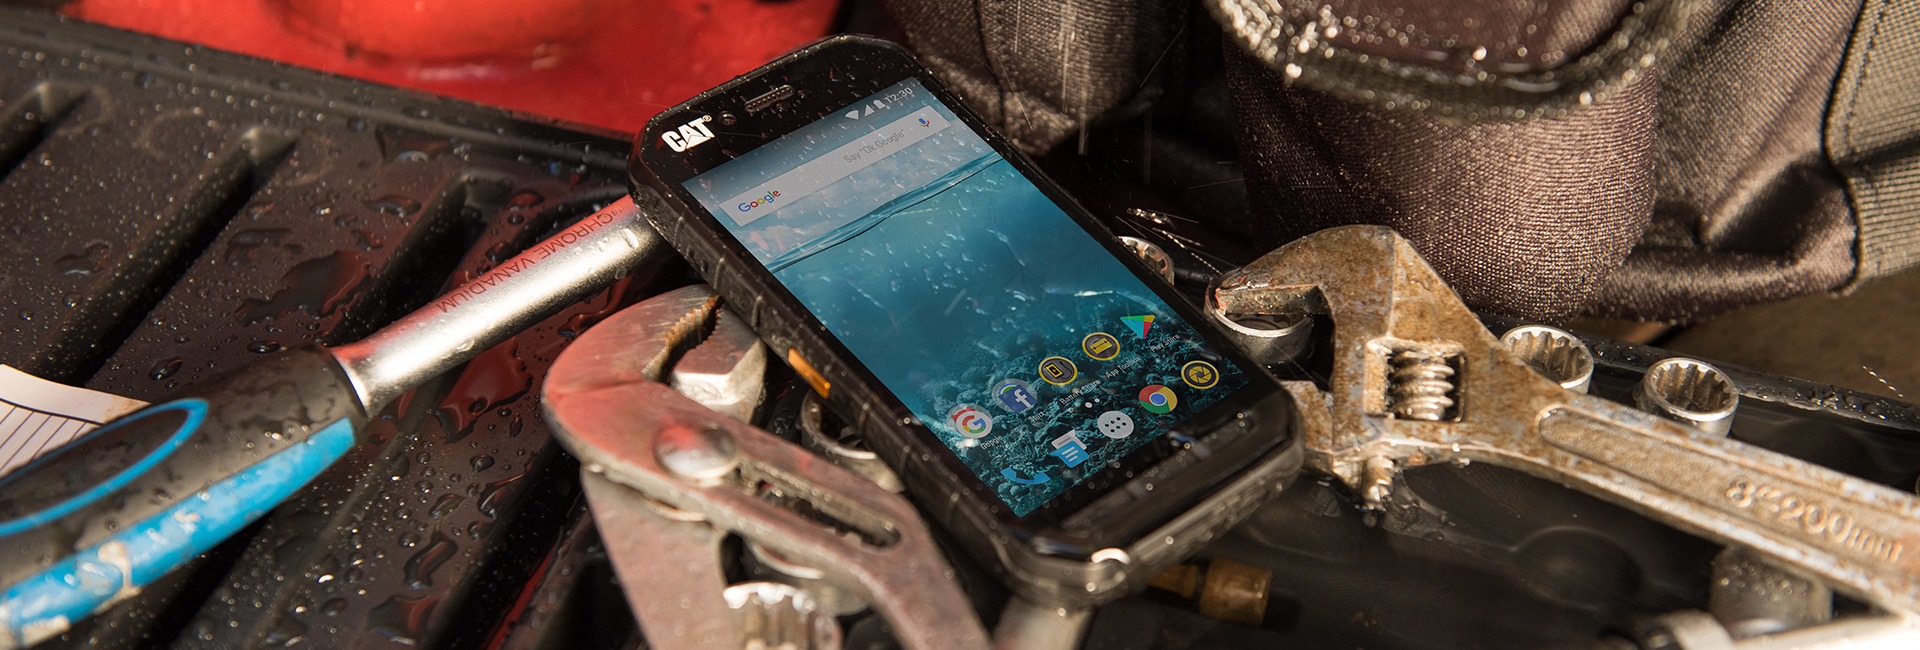 Cat® Phones' Industry Leading Rugged Devices Include Free Screen Repair Under Warranty